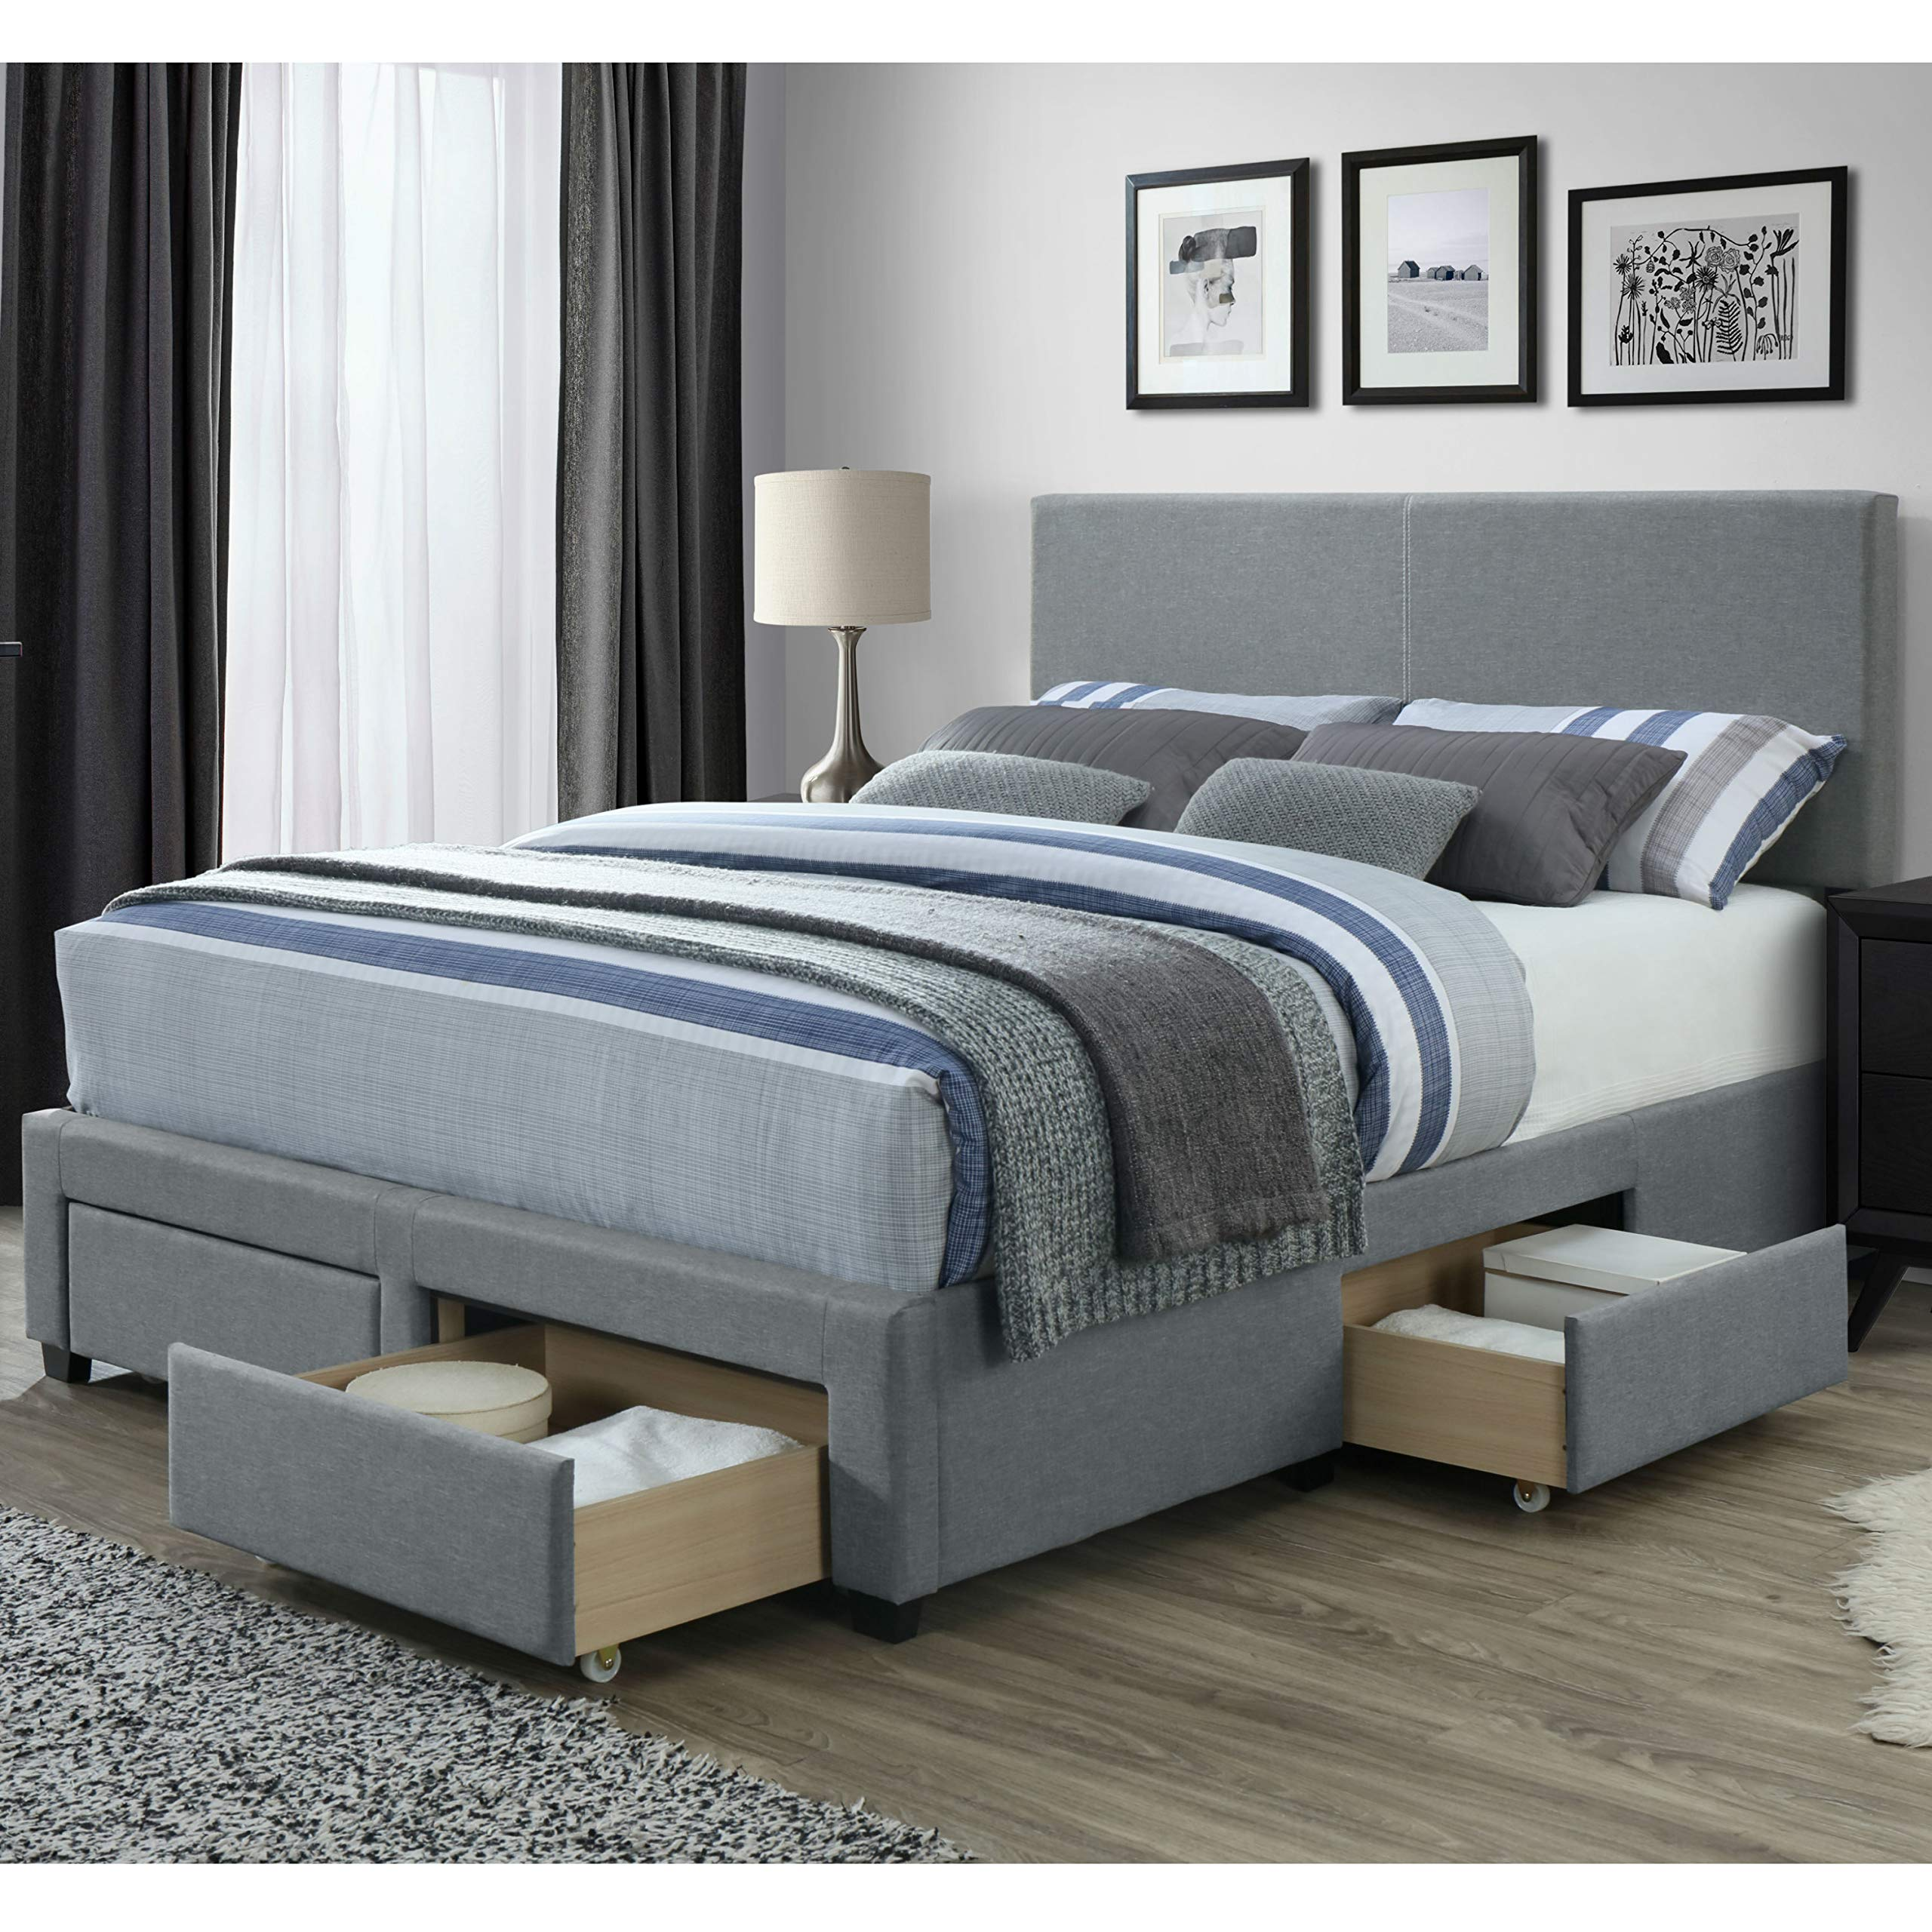 DG Casa Kelly Panel Bed Frame with Storage Drawers and Upholstered Headboard, Queen Size in Grey Linen Style Fabric by DG Casa